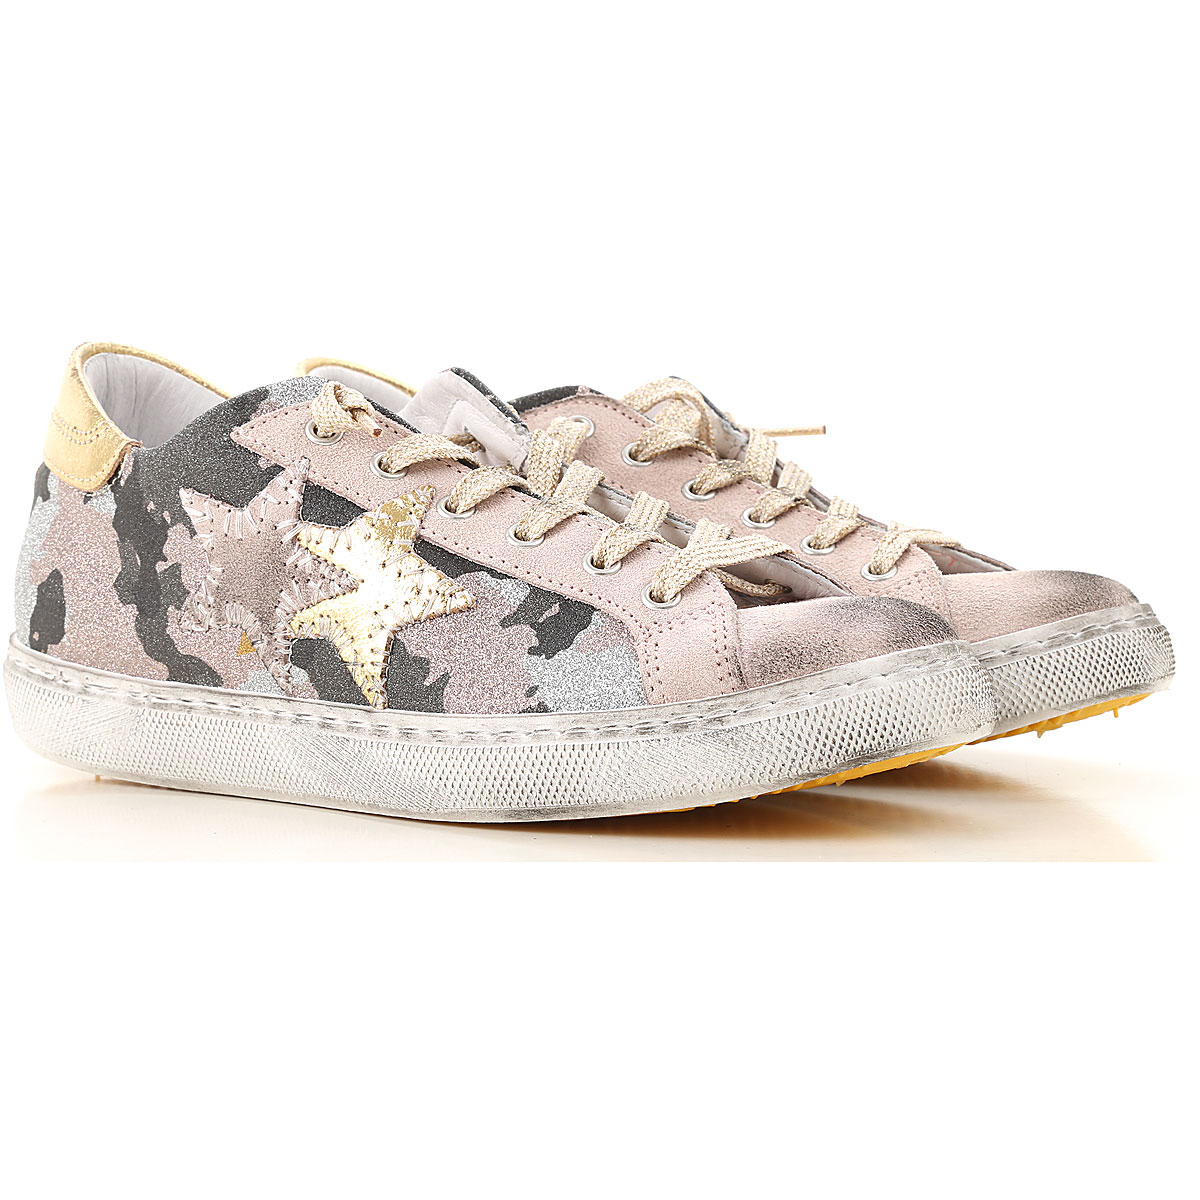 Image of 2Star Kids Shoes for Girls, Pink, Leather, 2017, 28 29 30 31 32 33 34 35 36 37 38